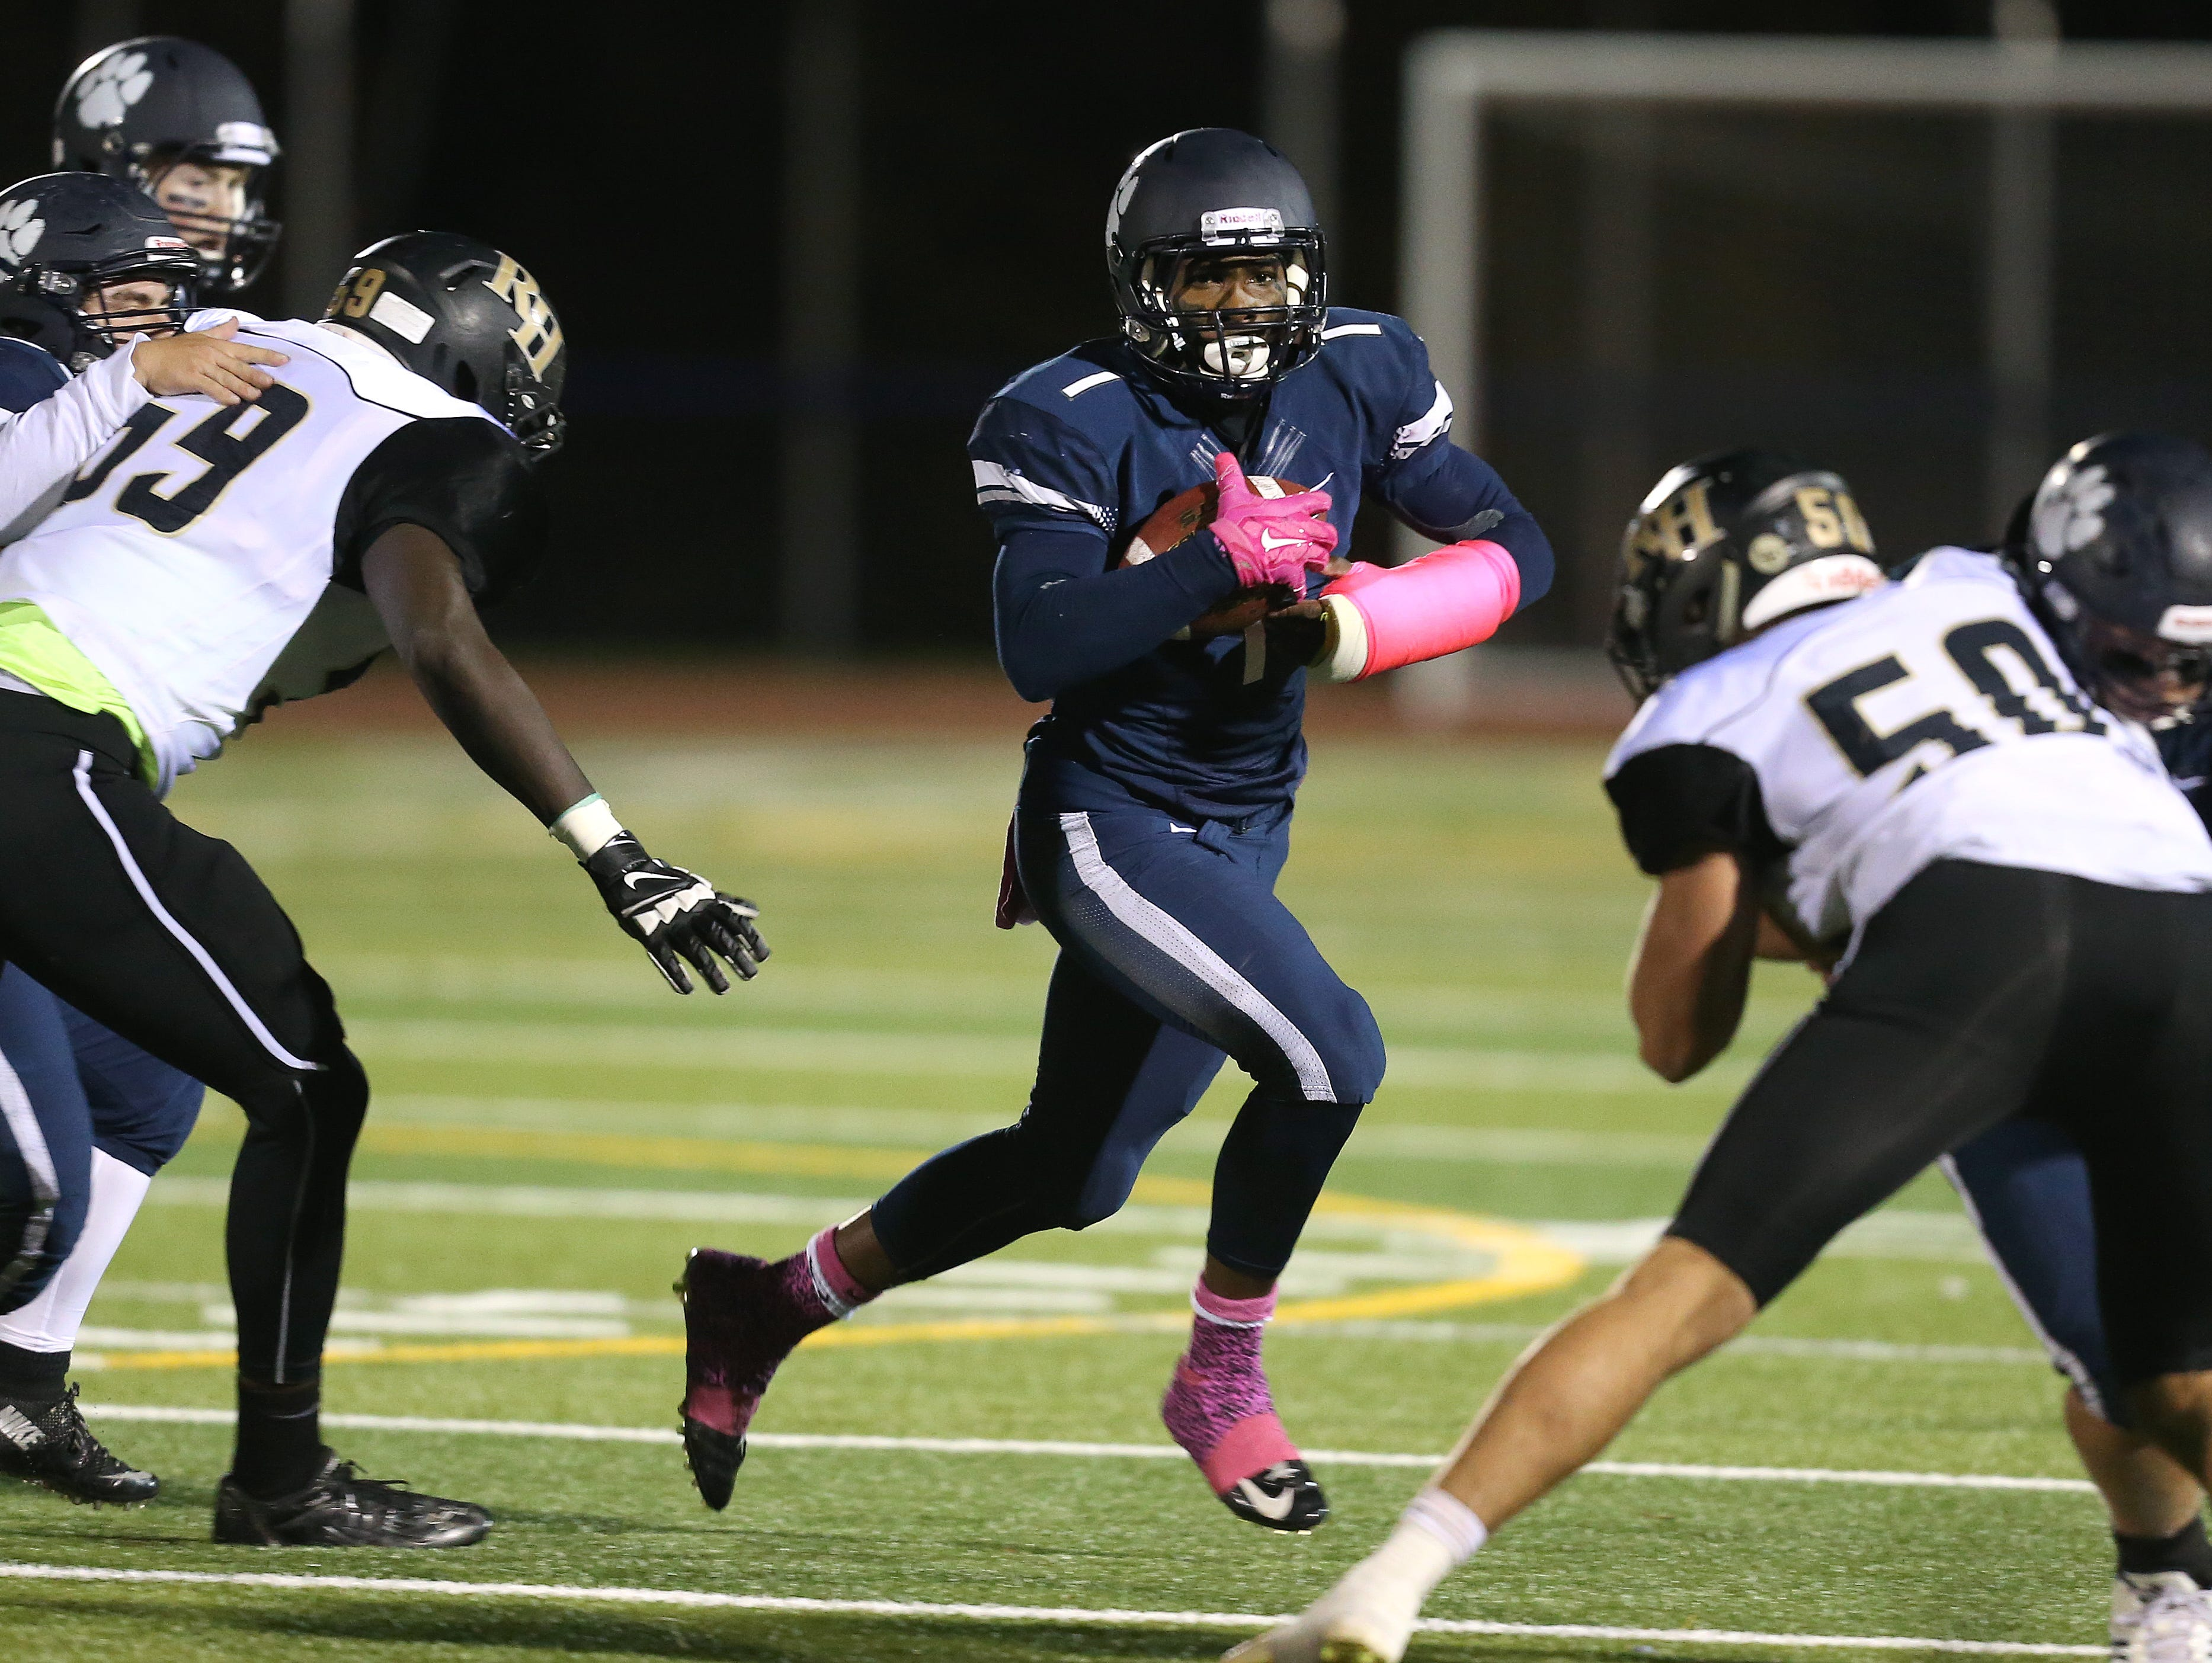 Pittsford's Josh Mack looks for a hole at the line of scrimmage against Rush-Henrietta.